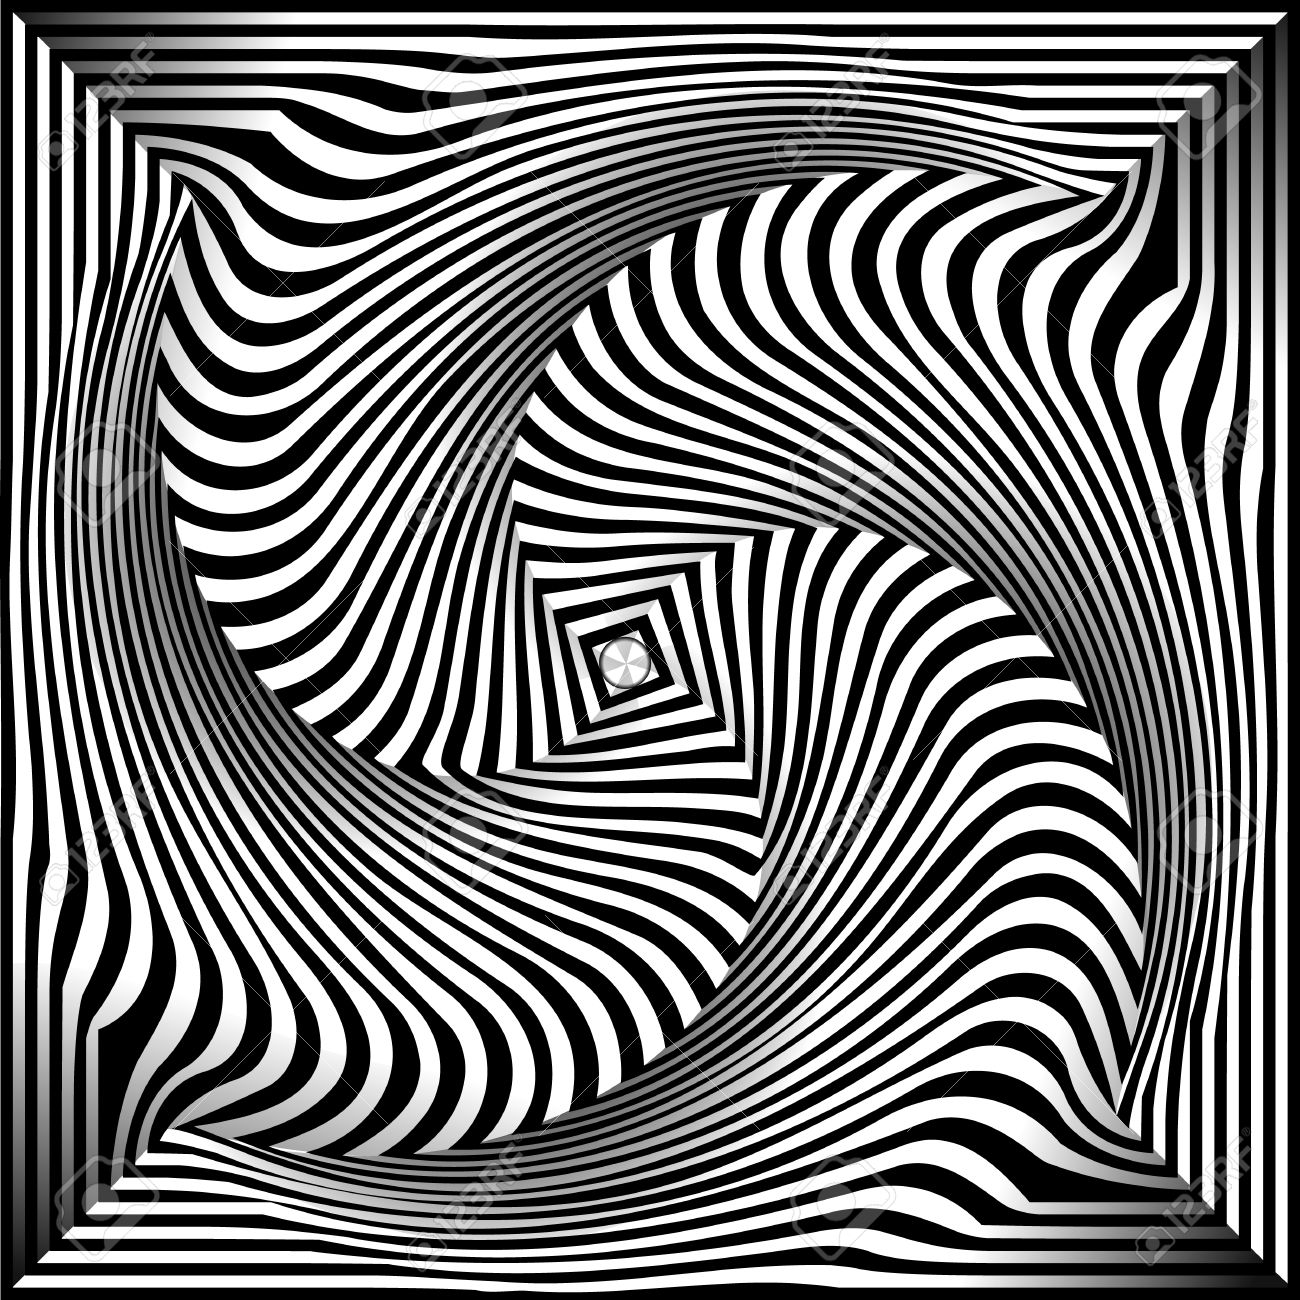 1300x1300 25495653 Spiral Optical Illusion Abstract Black And White Opt Art